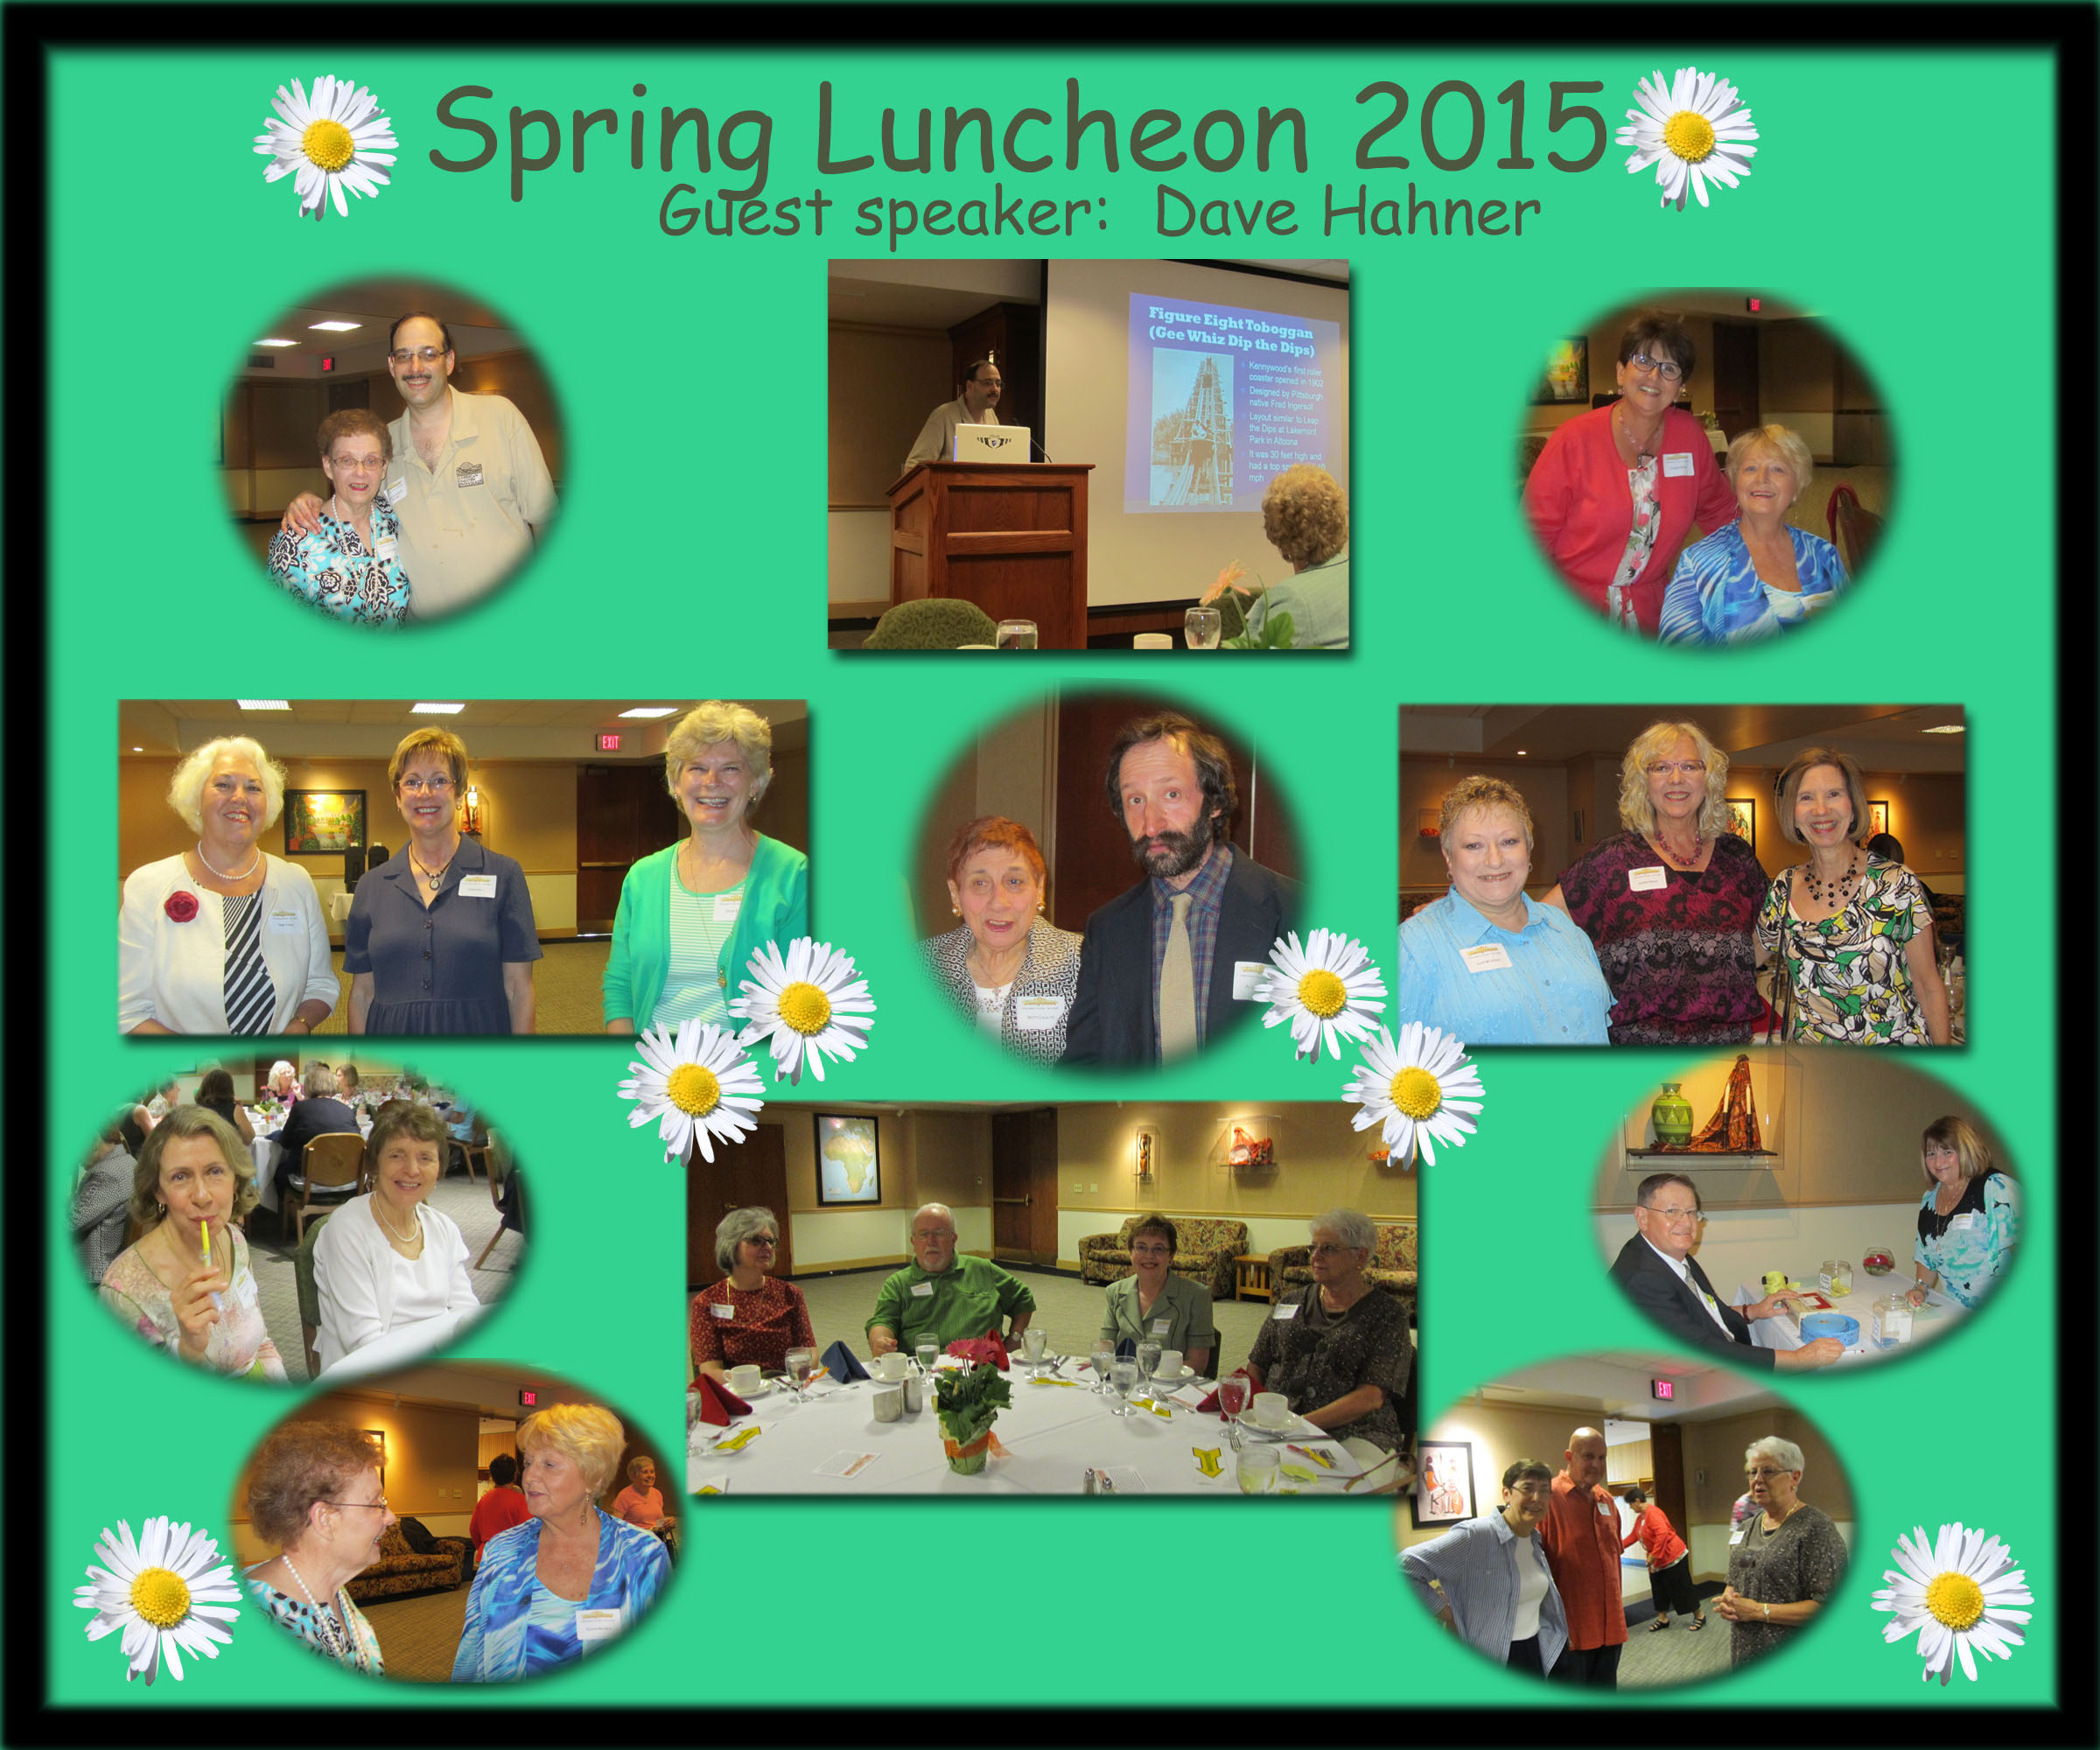 spring luncheon 2015